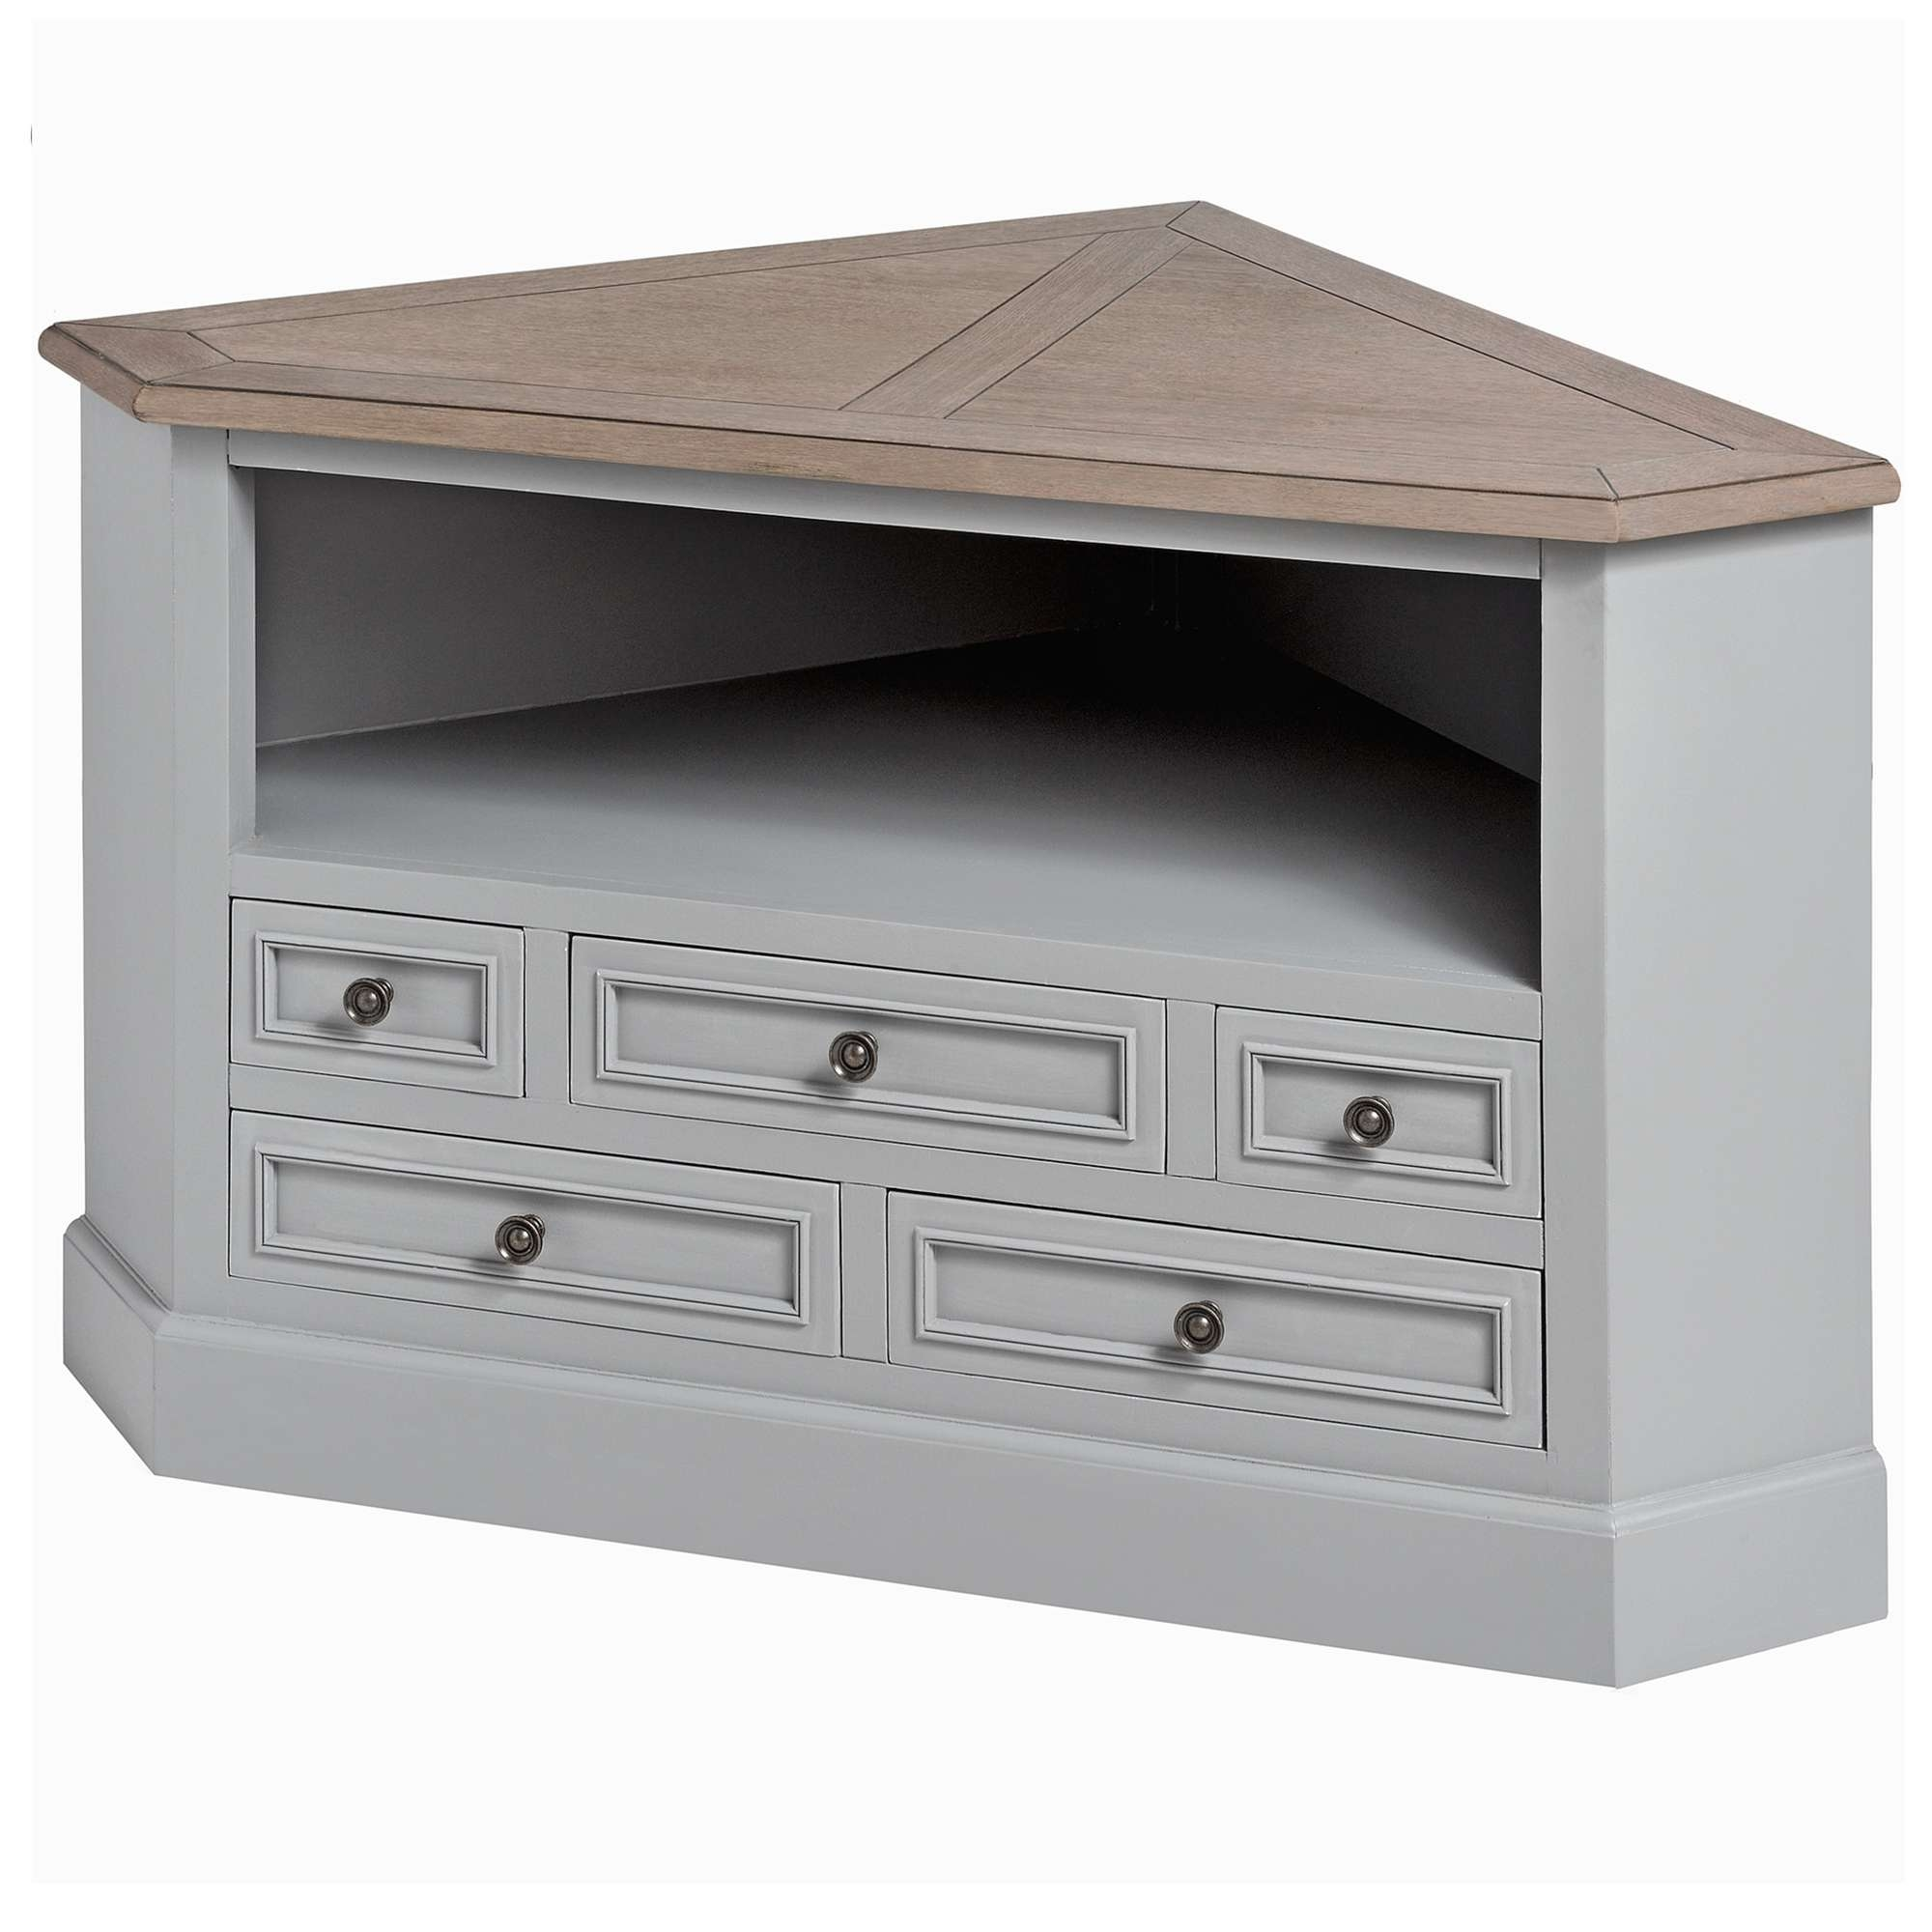 Churchill Shabby Chic Tv Cabinet | Available Online Now Within Shabby Chic Tv Cabinets (View 2 of 20)